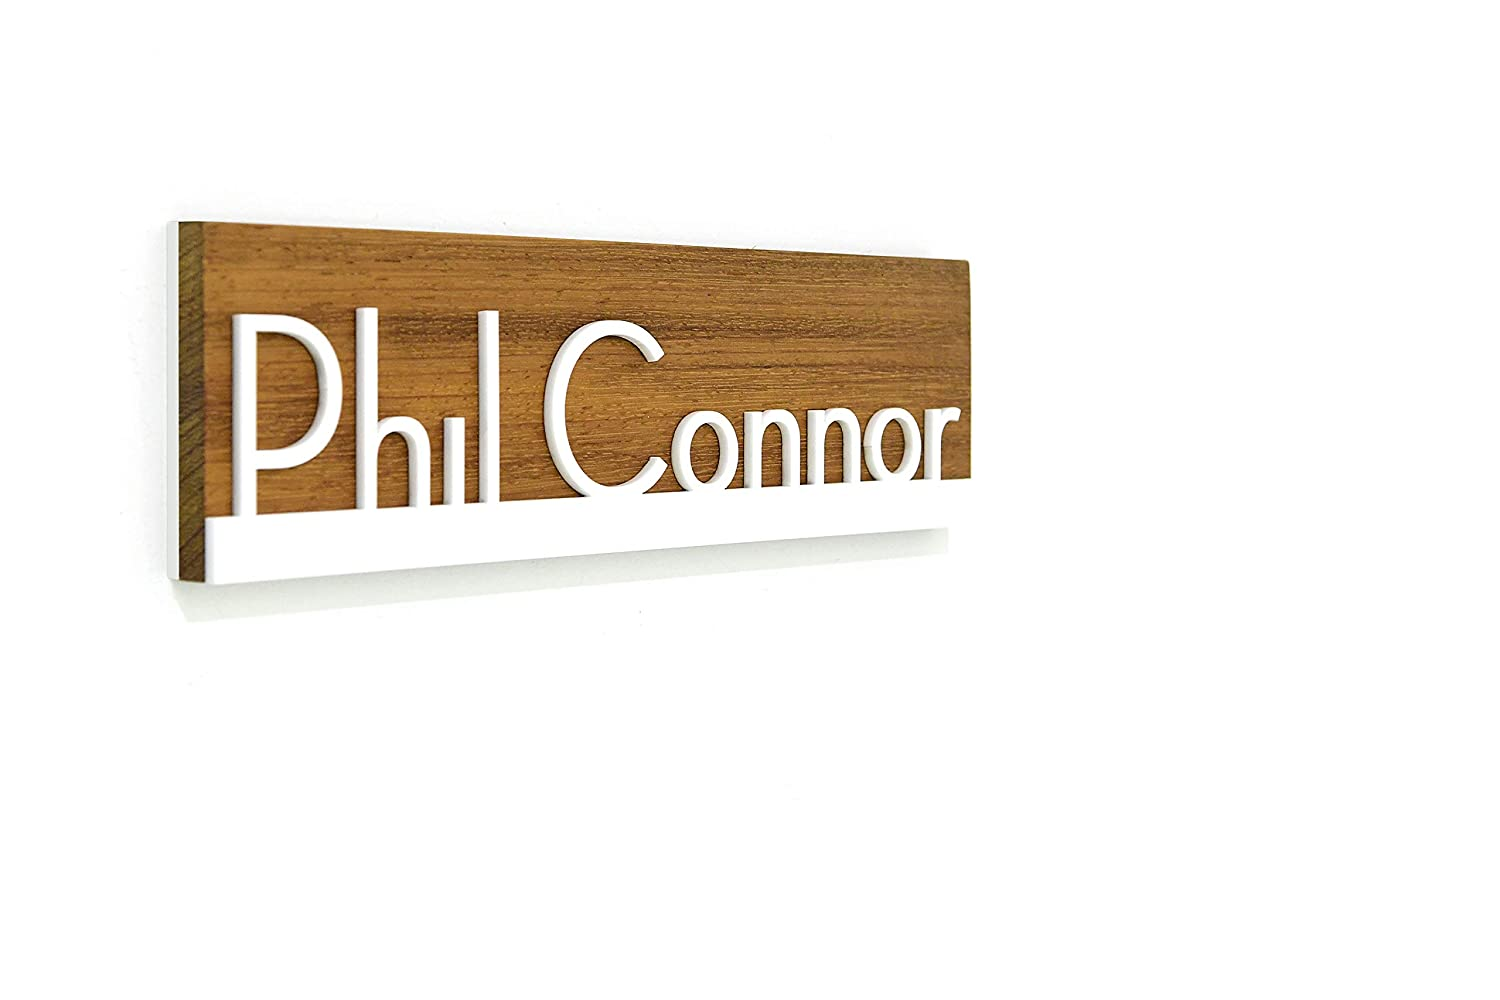 Modern Office Door Name Plate - and White Wood sale Africa Solid Teak Max 79% OFF